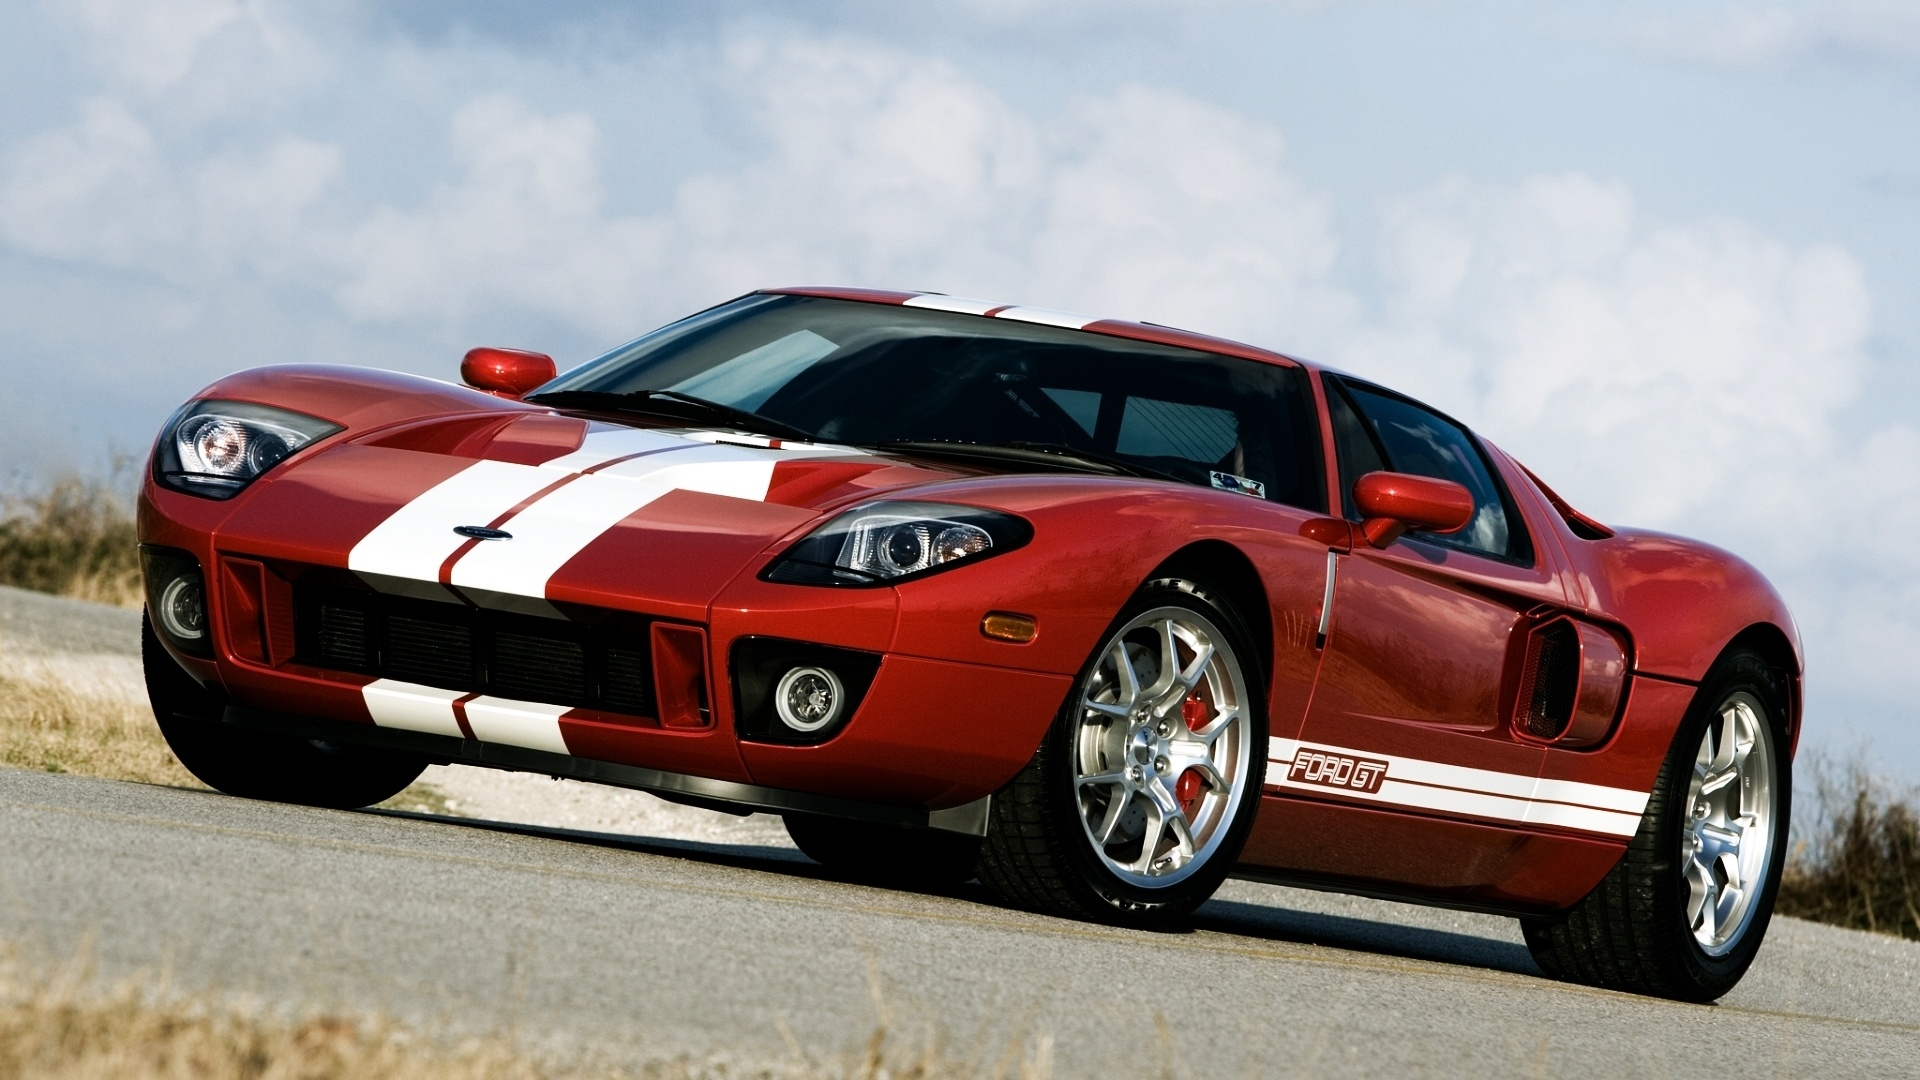 Wallpaper Ford Gt 700 Supercar Red Color 1920x1200 Hd Picture Image